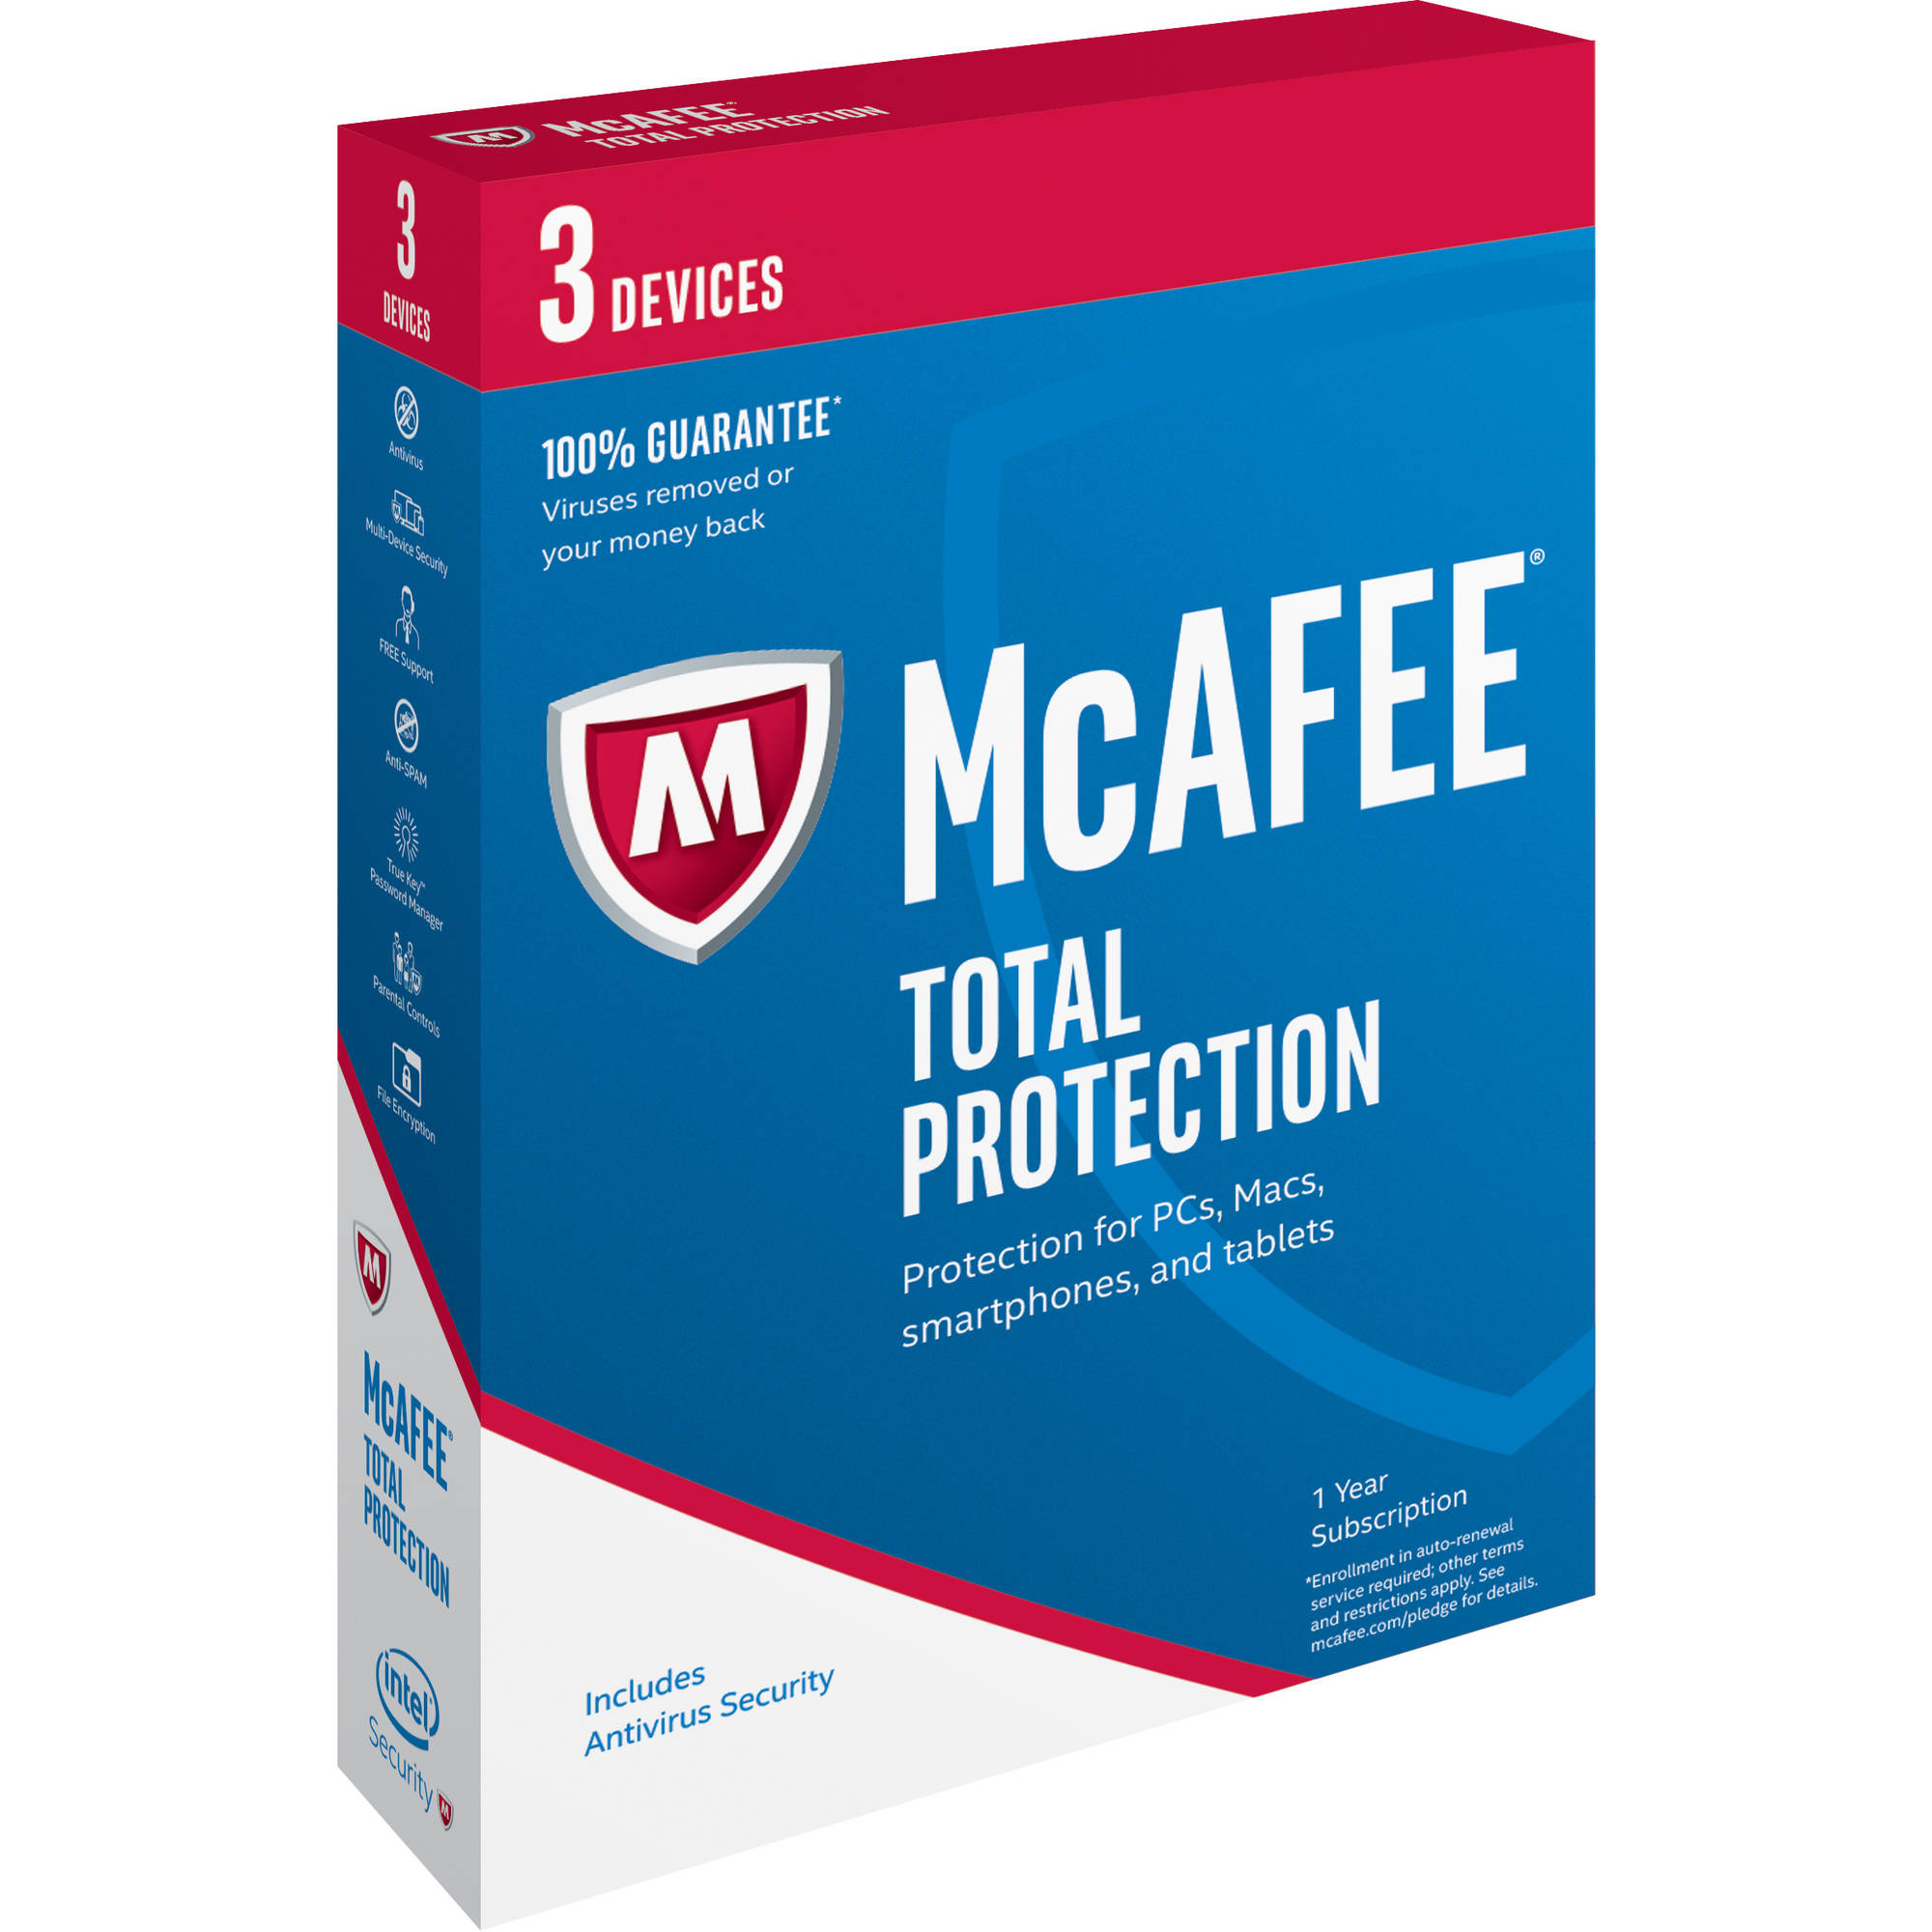 McAfee Total Protection 2016, 3 Devices